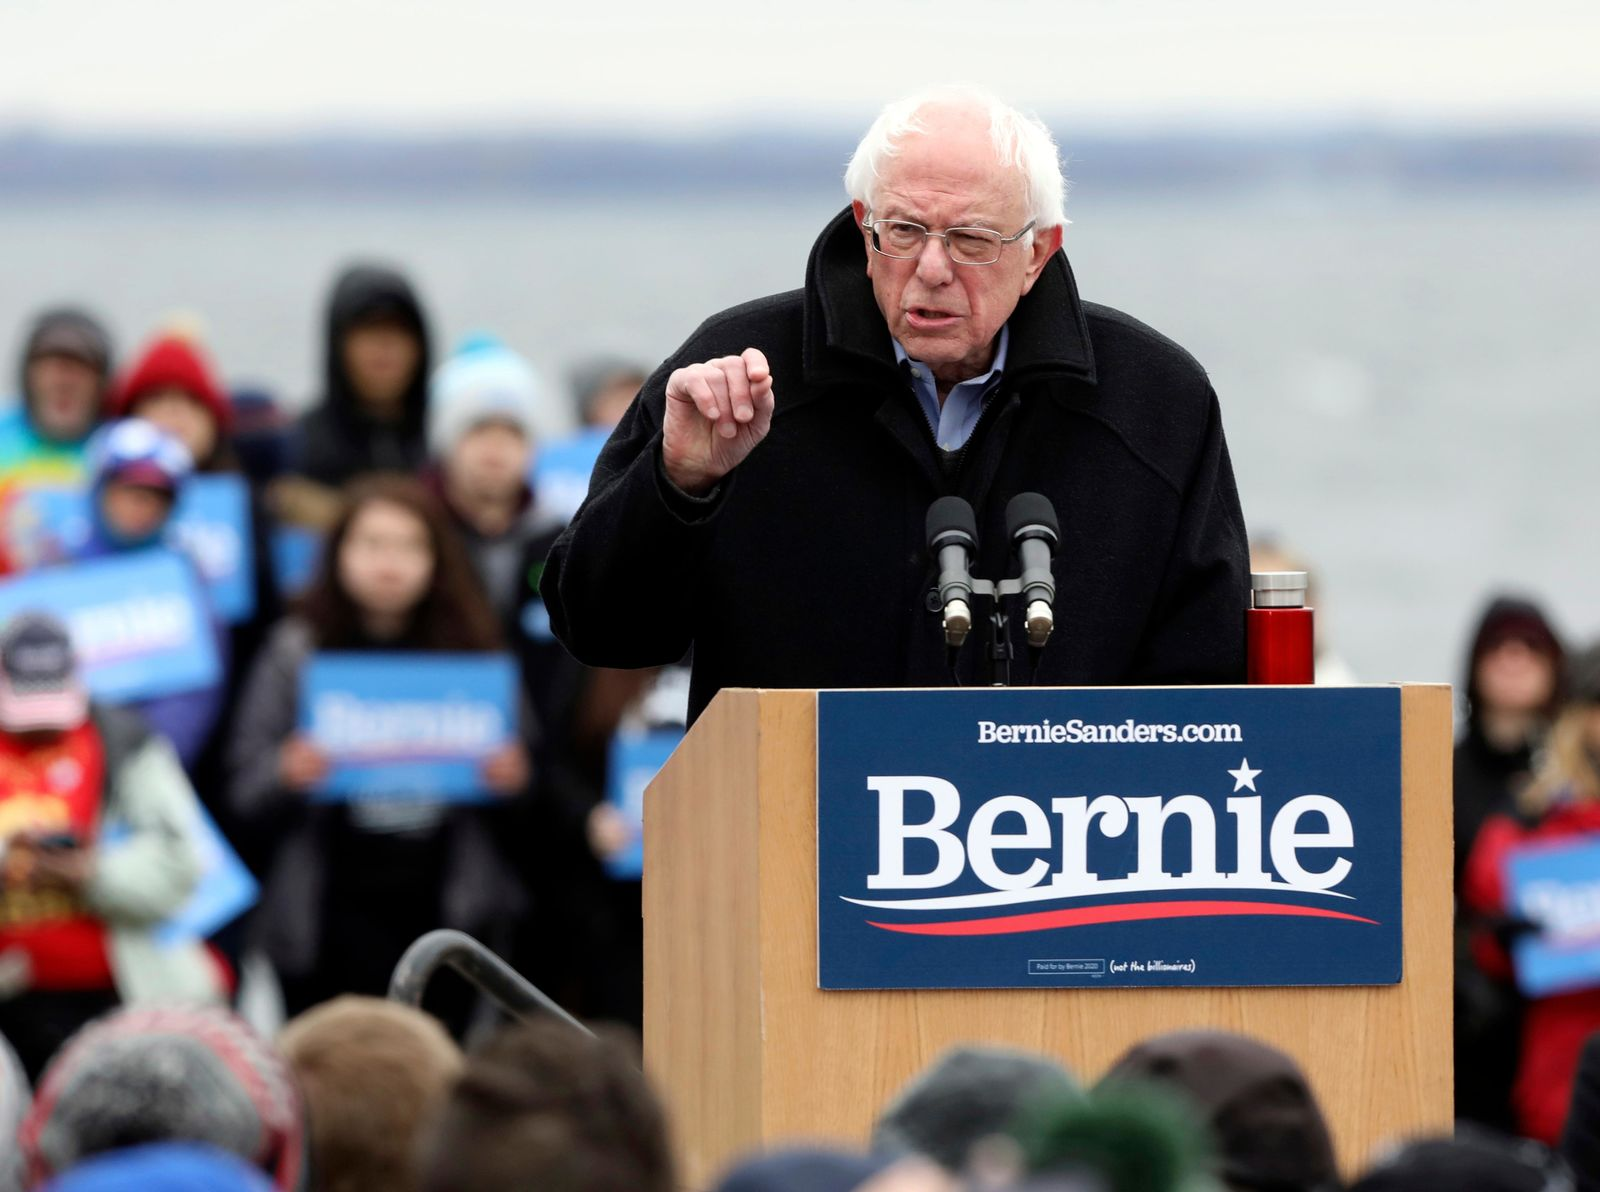 Democratic presidential candidate Sen. Bernie Sanders, I-Vt., speaks to a crowd at James Madison Park in Madison, Friday, April 12, 2019. (Amber Arnold/Wisconsin State Journal via AP)